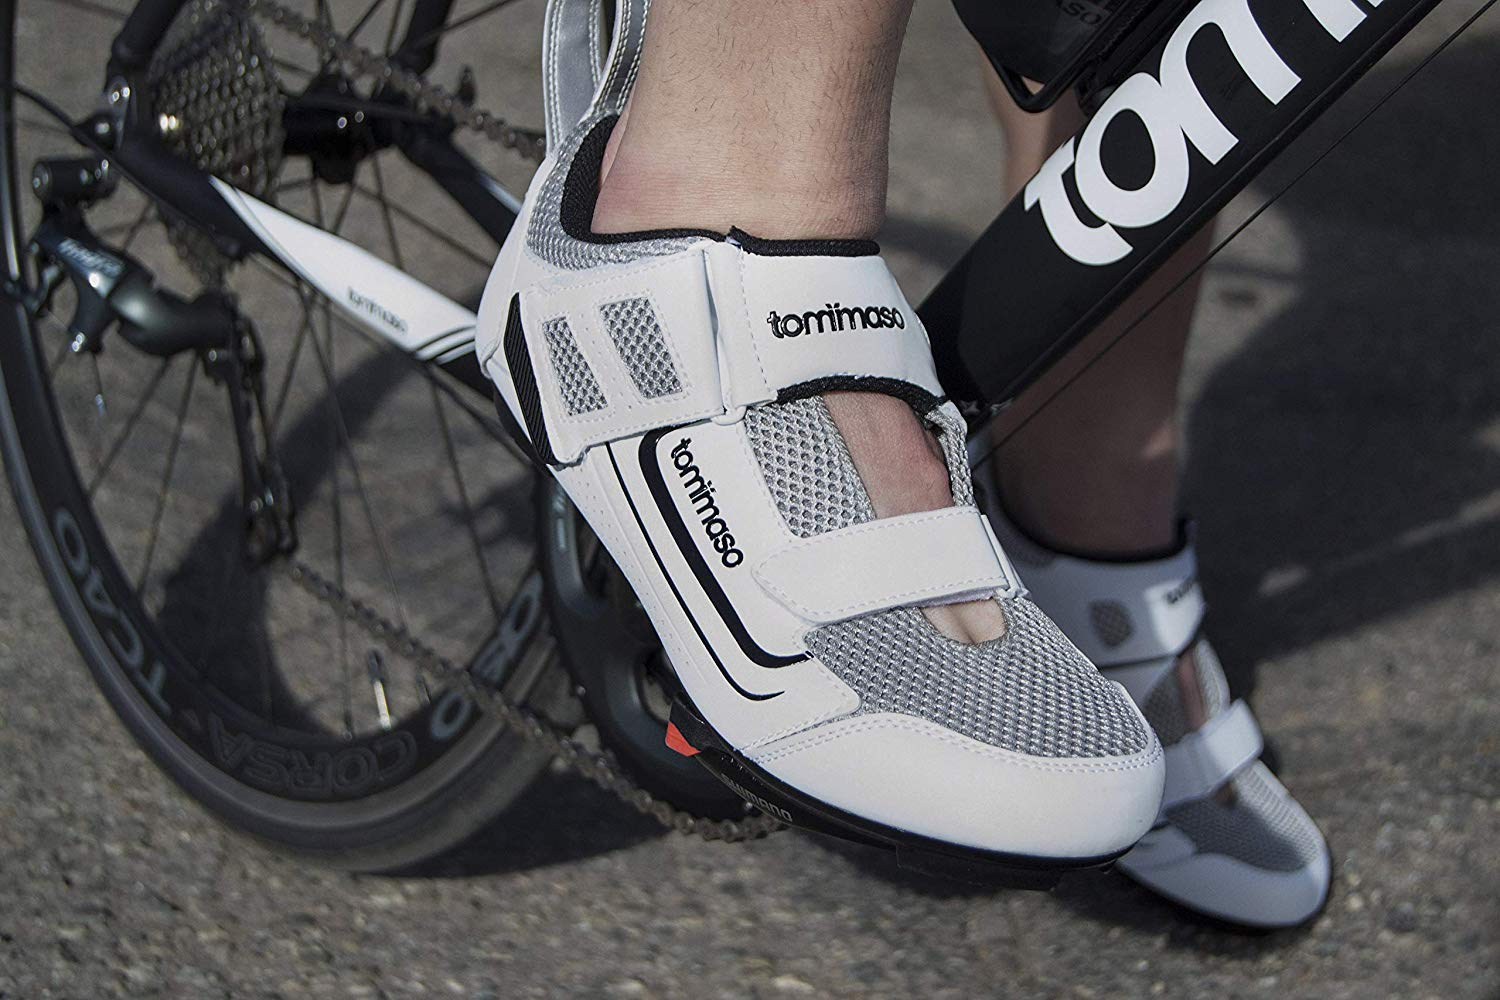 Things to Consider Before Buying Cycling Shoe's